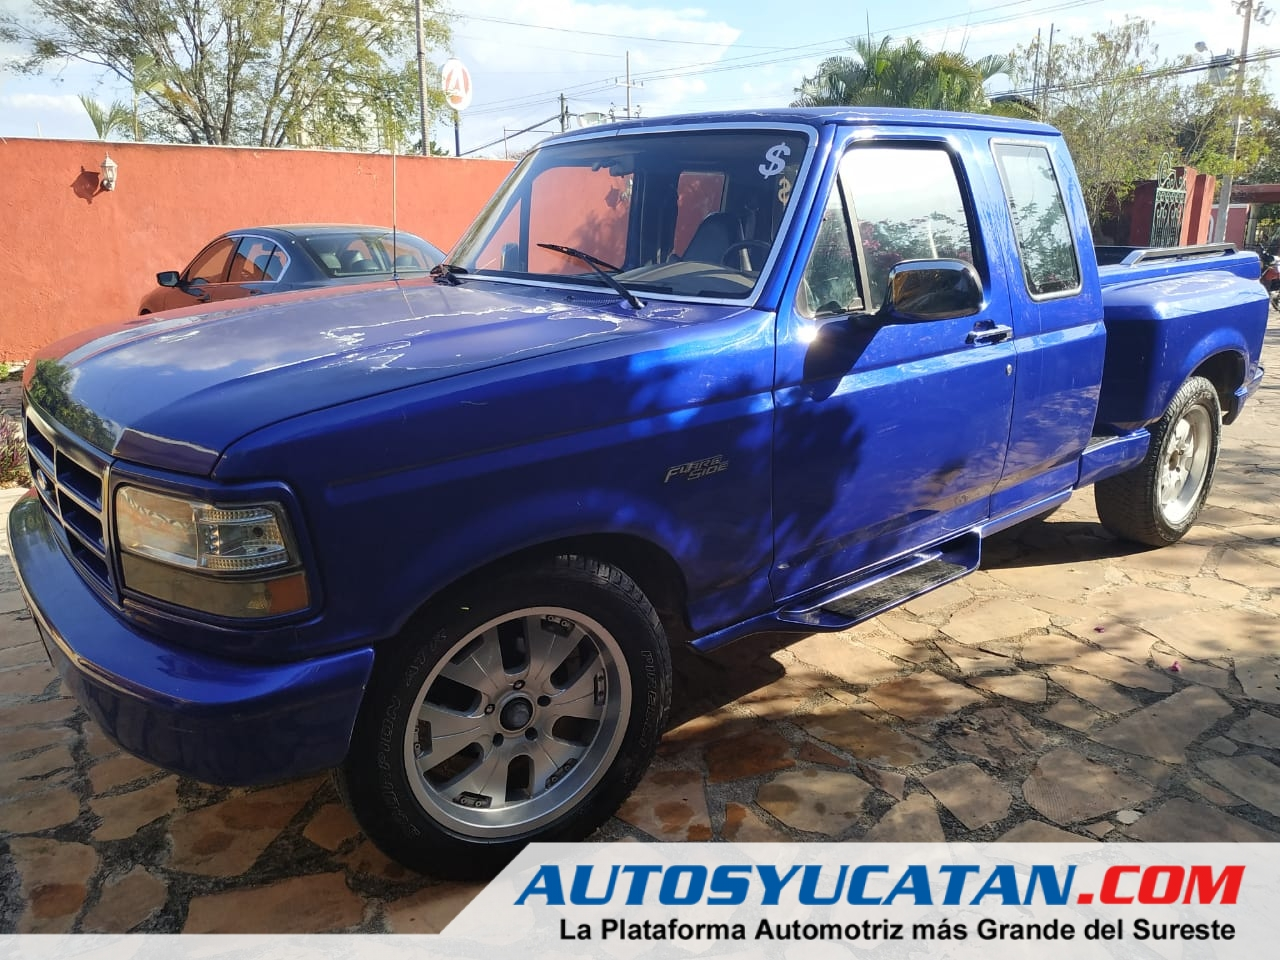 Camioneta actualizada Pick up Ford F150 Flareside Caja Californiana 1994